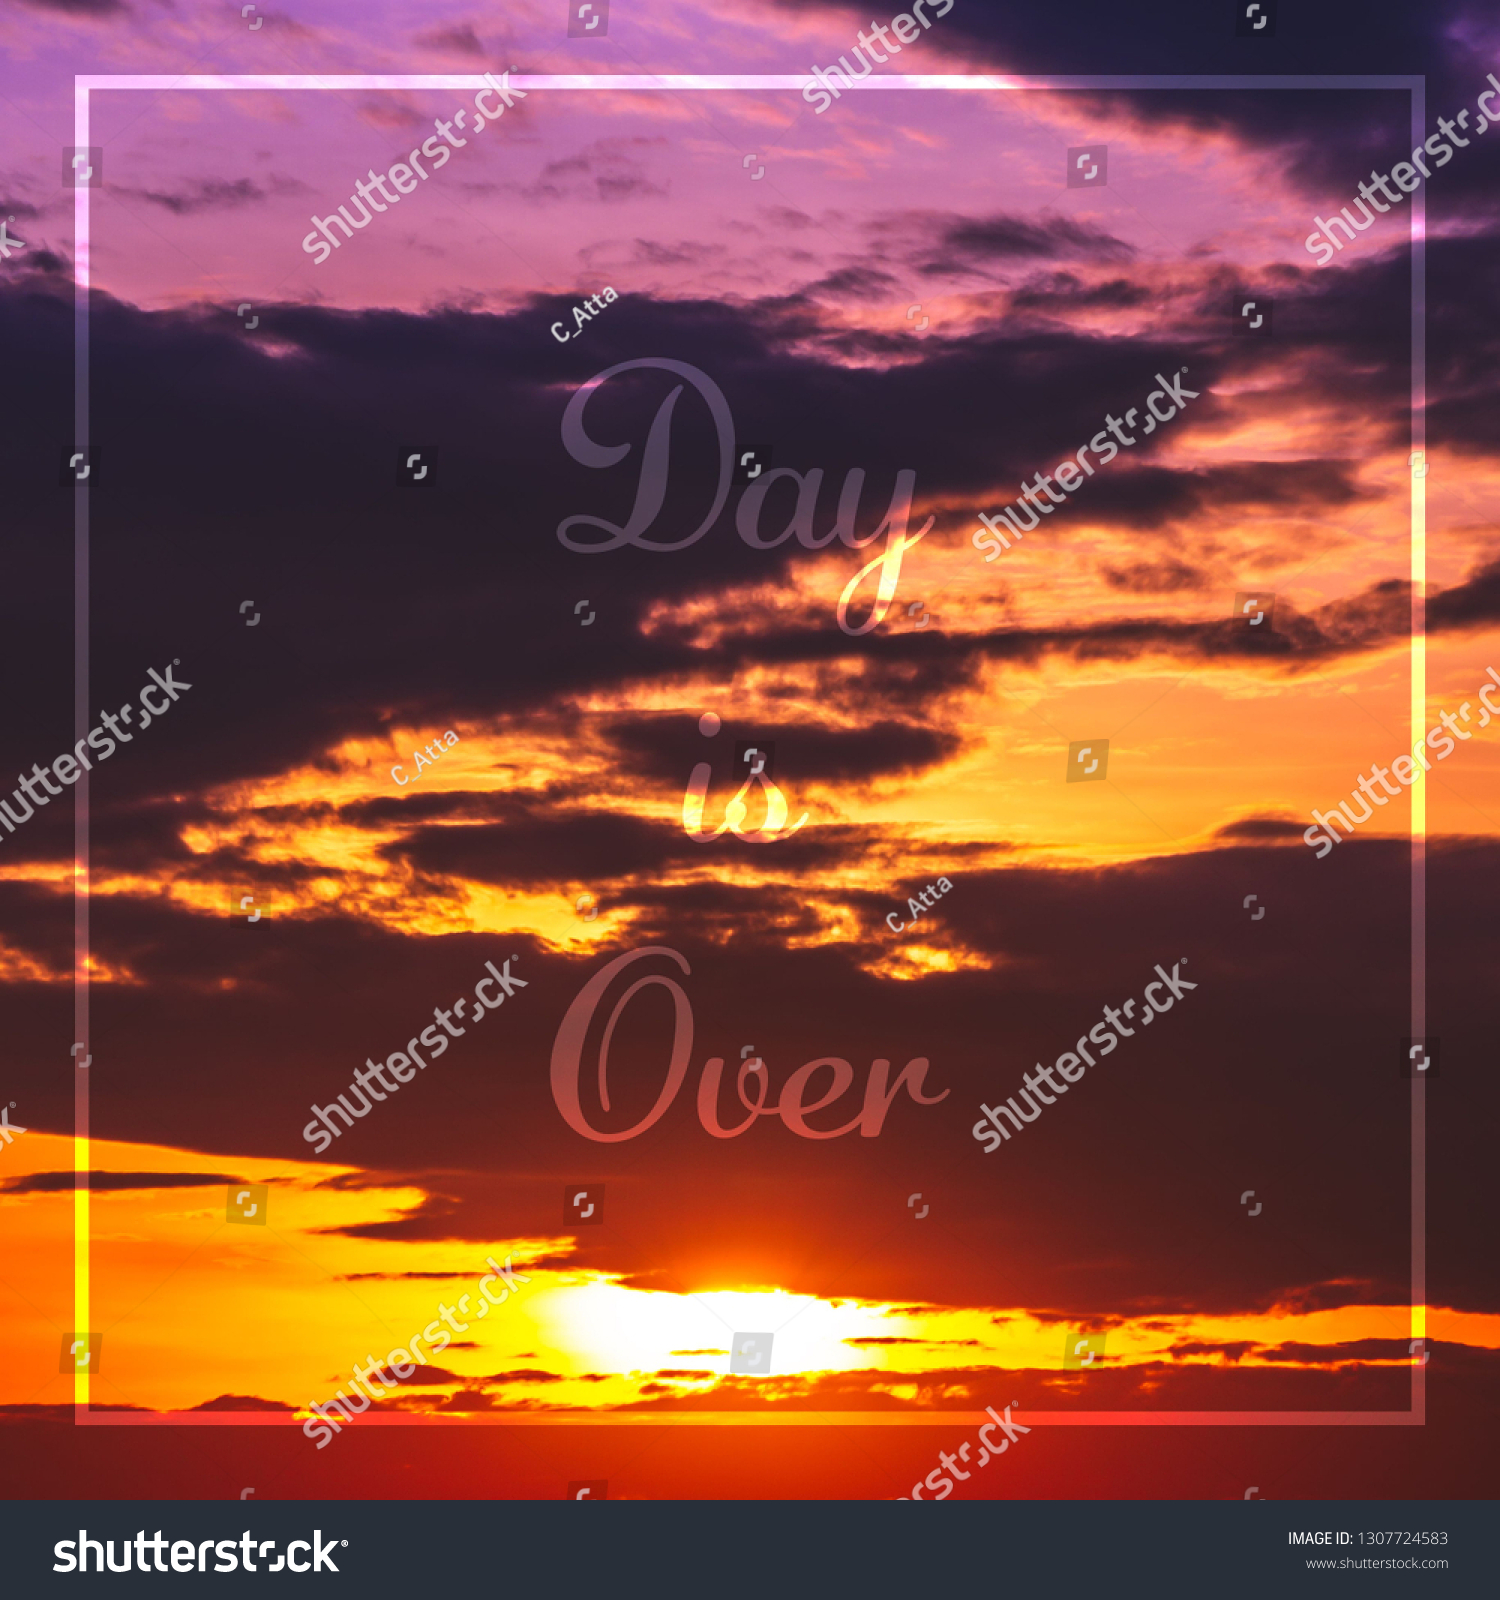 Abstract quotes in white frame with colorful twilight sky sunrise background